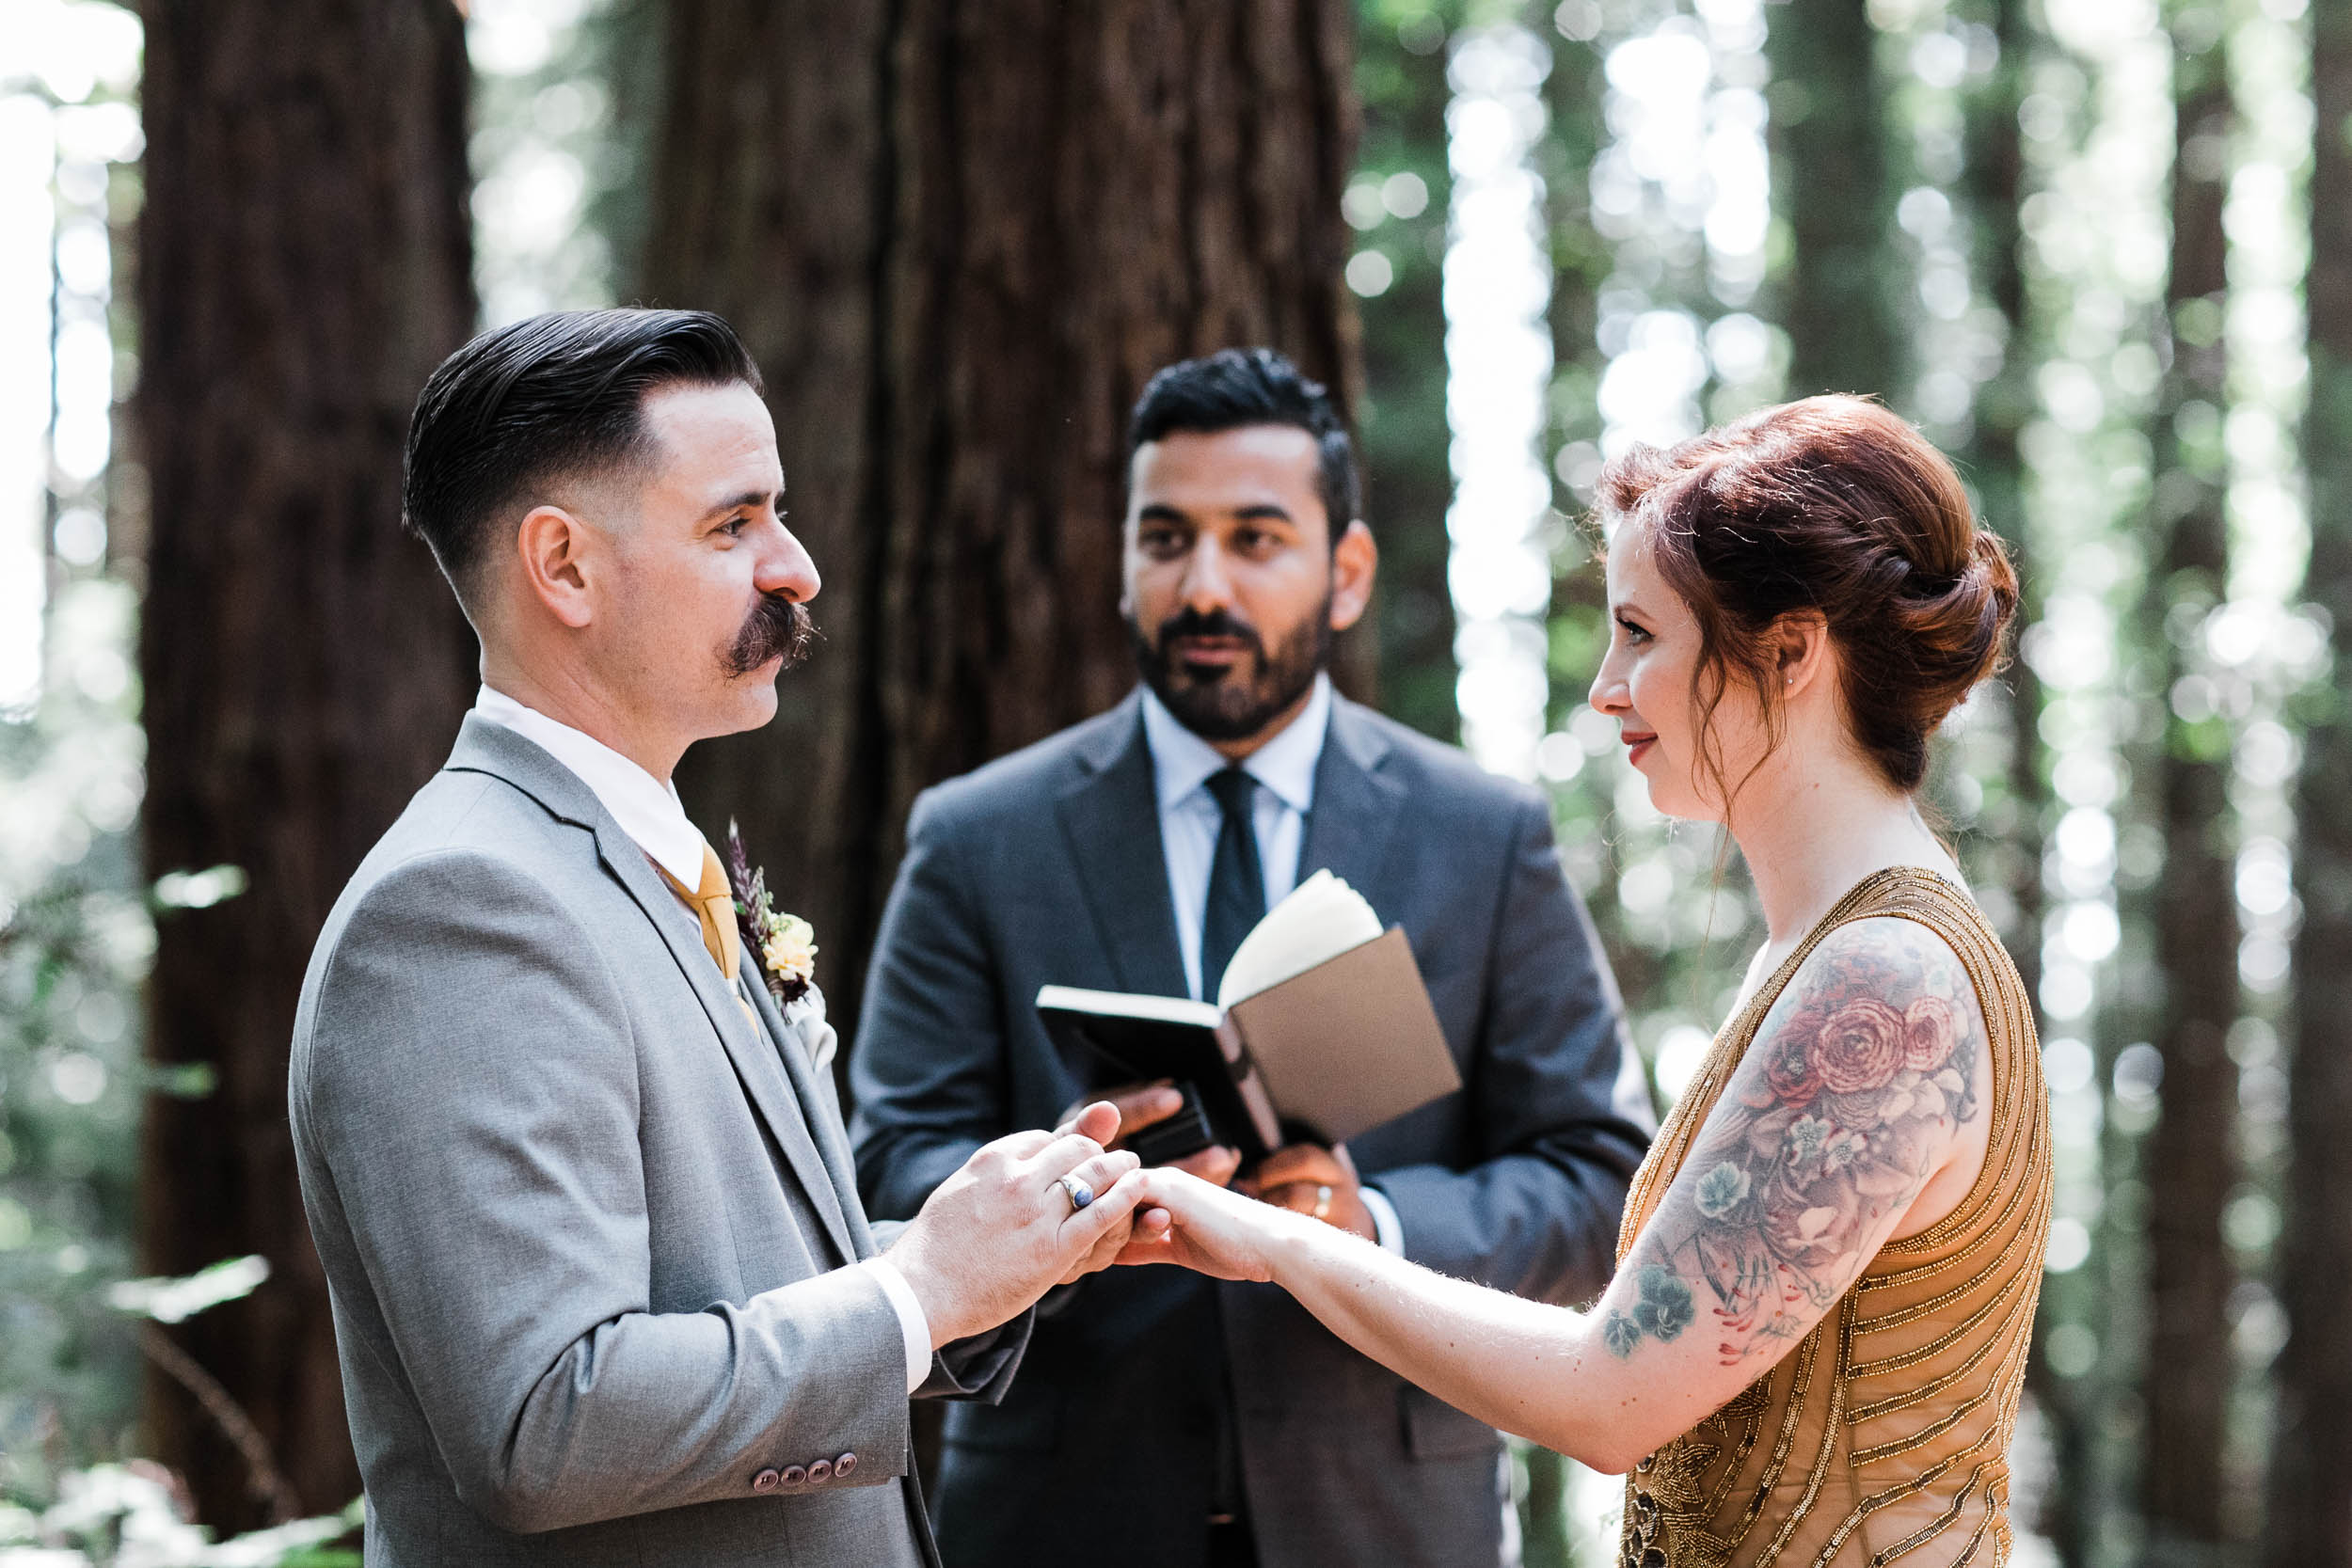 050418_J+S_Redwoods Elopement_Buena Lane Photography_0224-2.jpg